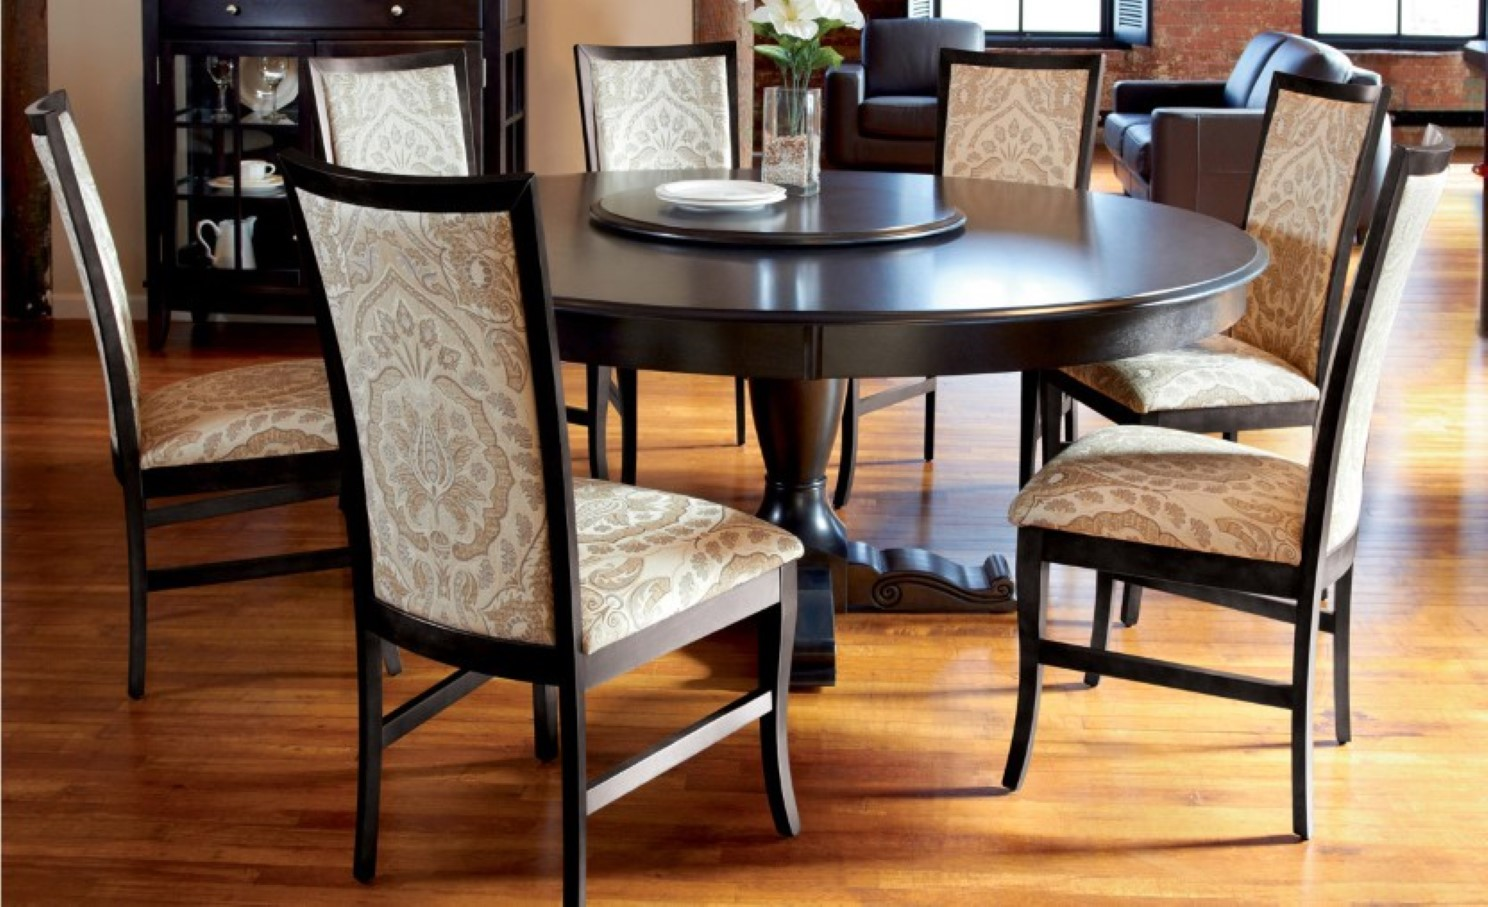 Trend Round Dining Room Table For 8 With Modern Round Dining Table Ideas